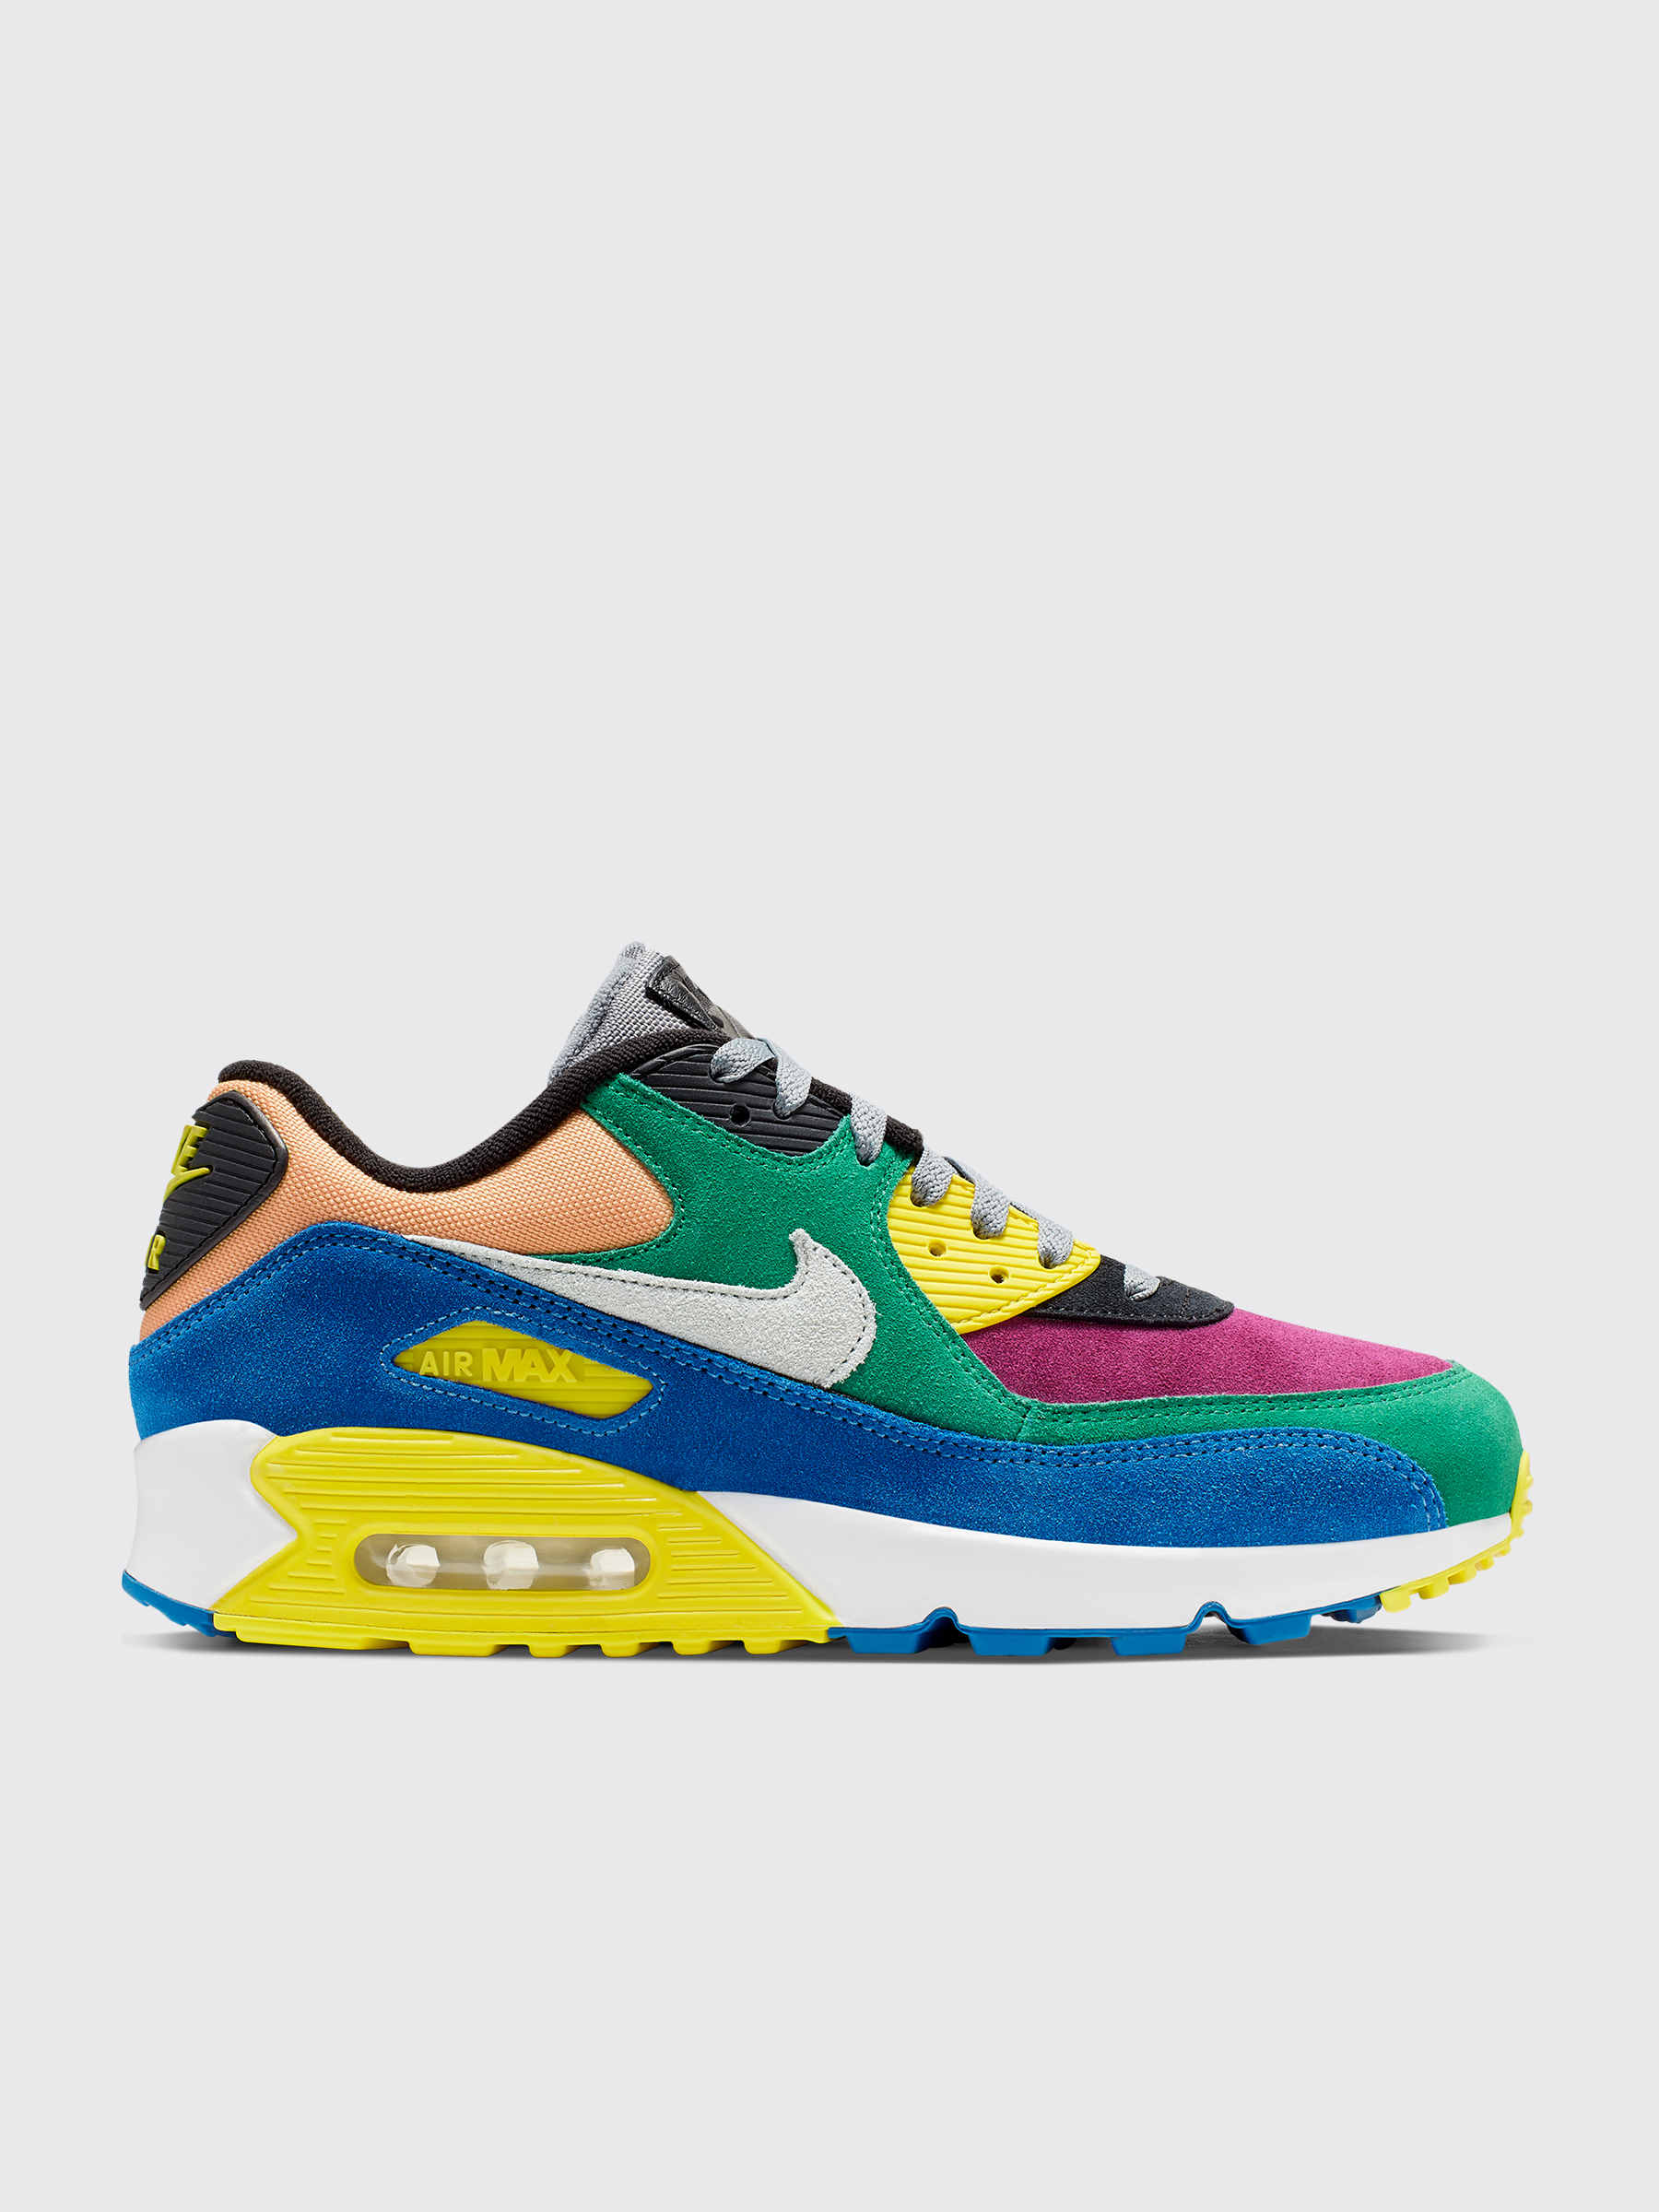 best website e03a4 83c24 Nike Air Max 90 QS Lucid Green / Barely Grey